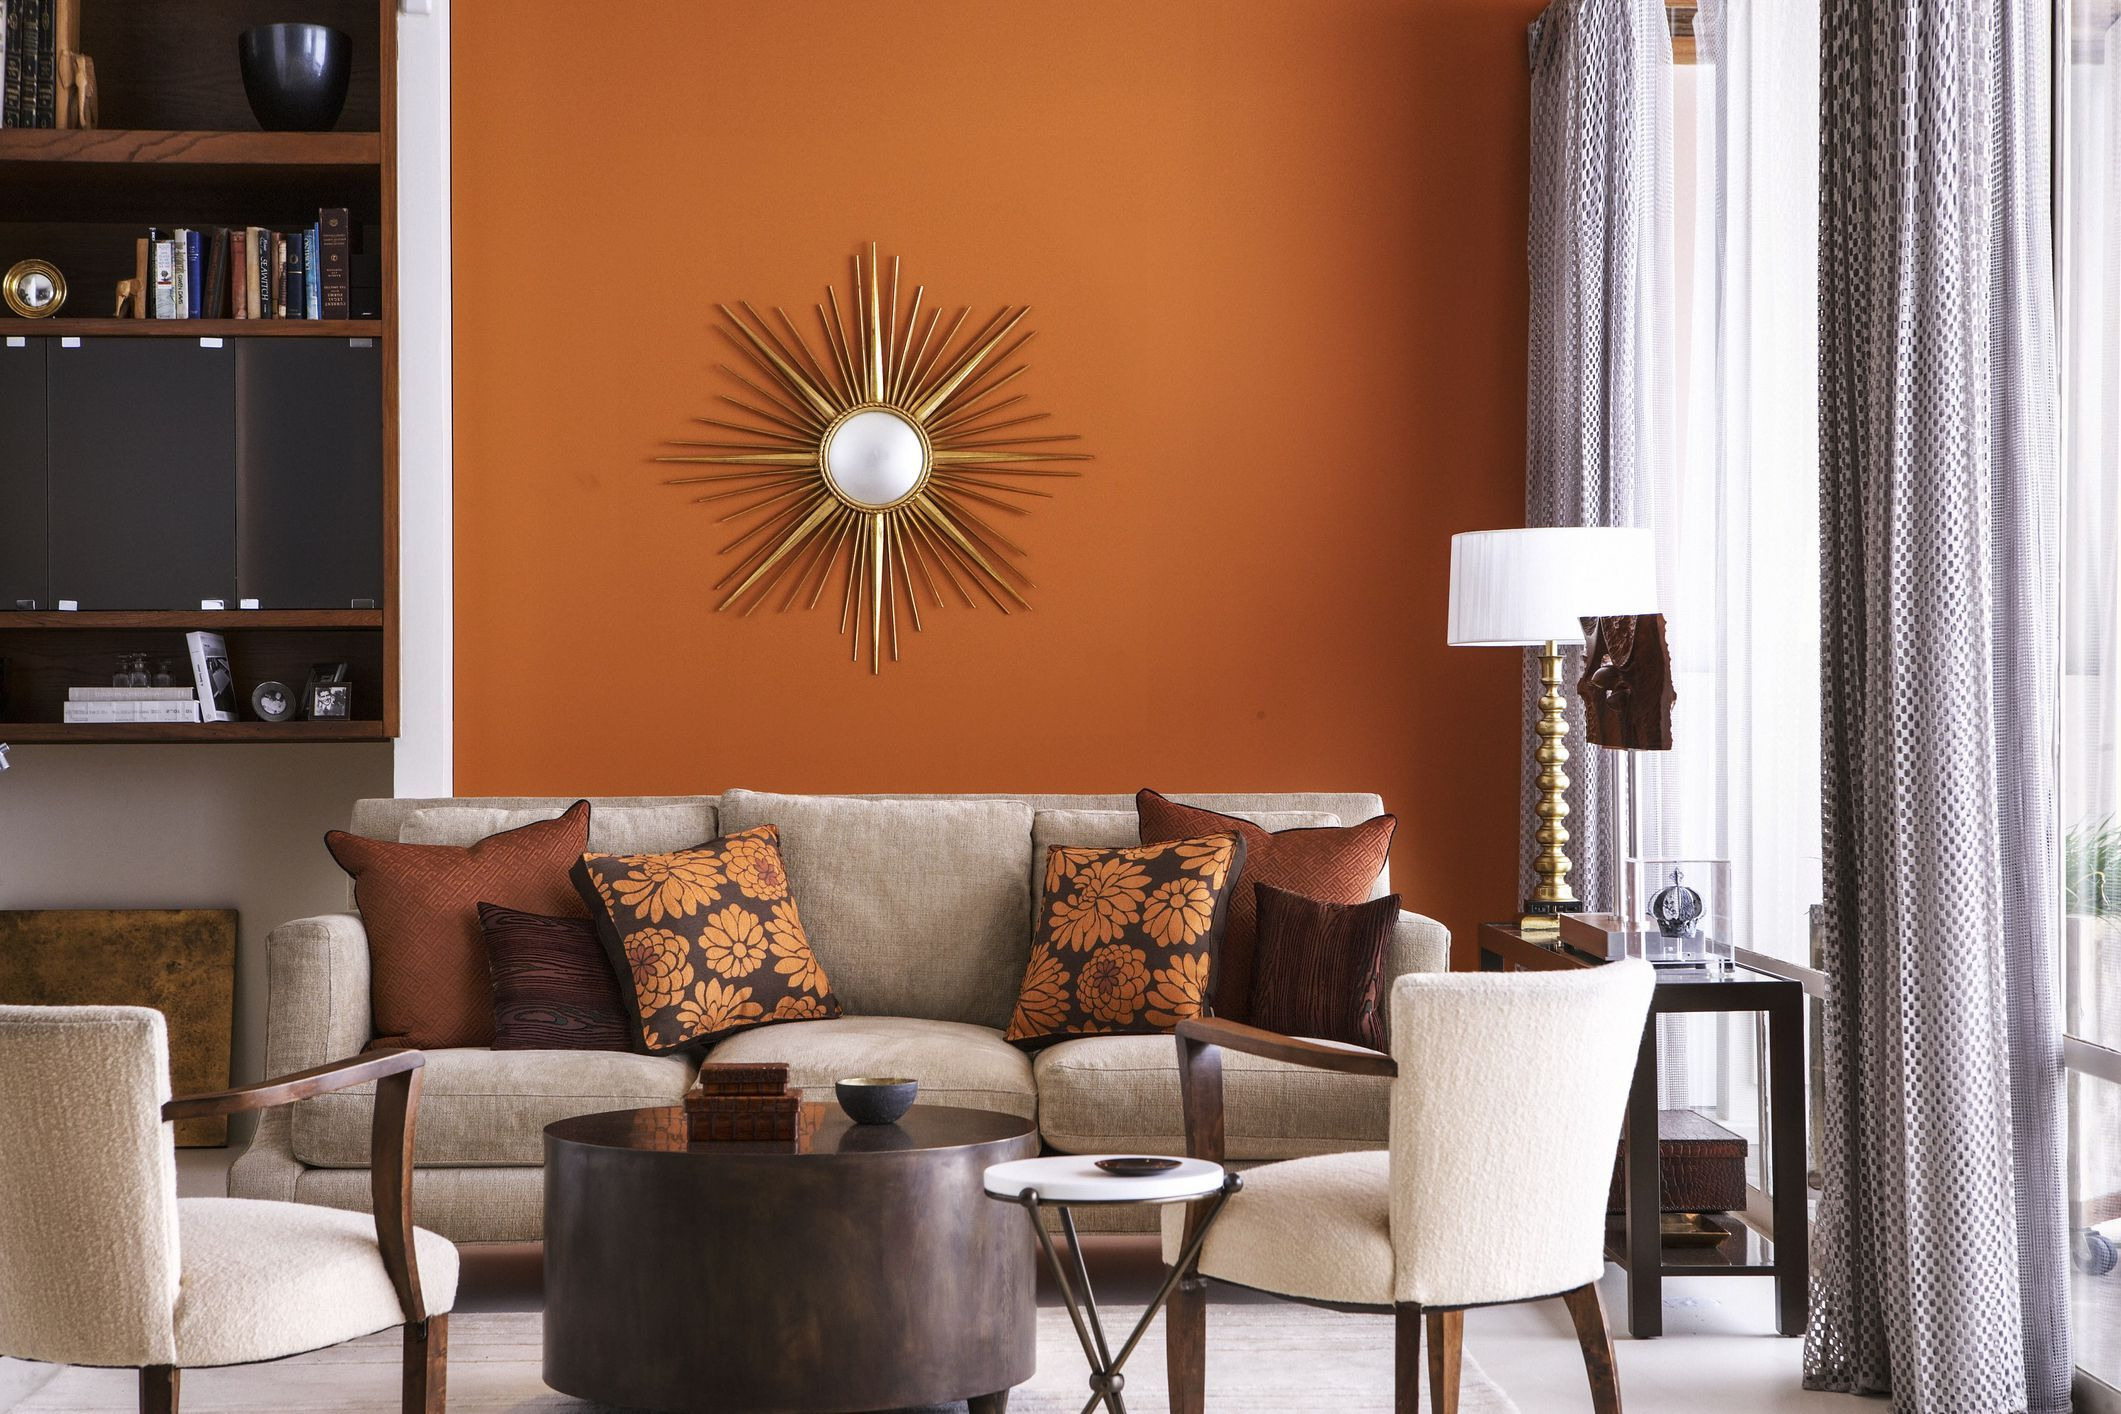 Decorating With A Warm Color Scheme Accent Walls In Living Room Living Room Wall Color Orange Living Room Walls #warm #colour #schemes #for #living #room